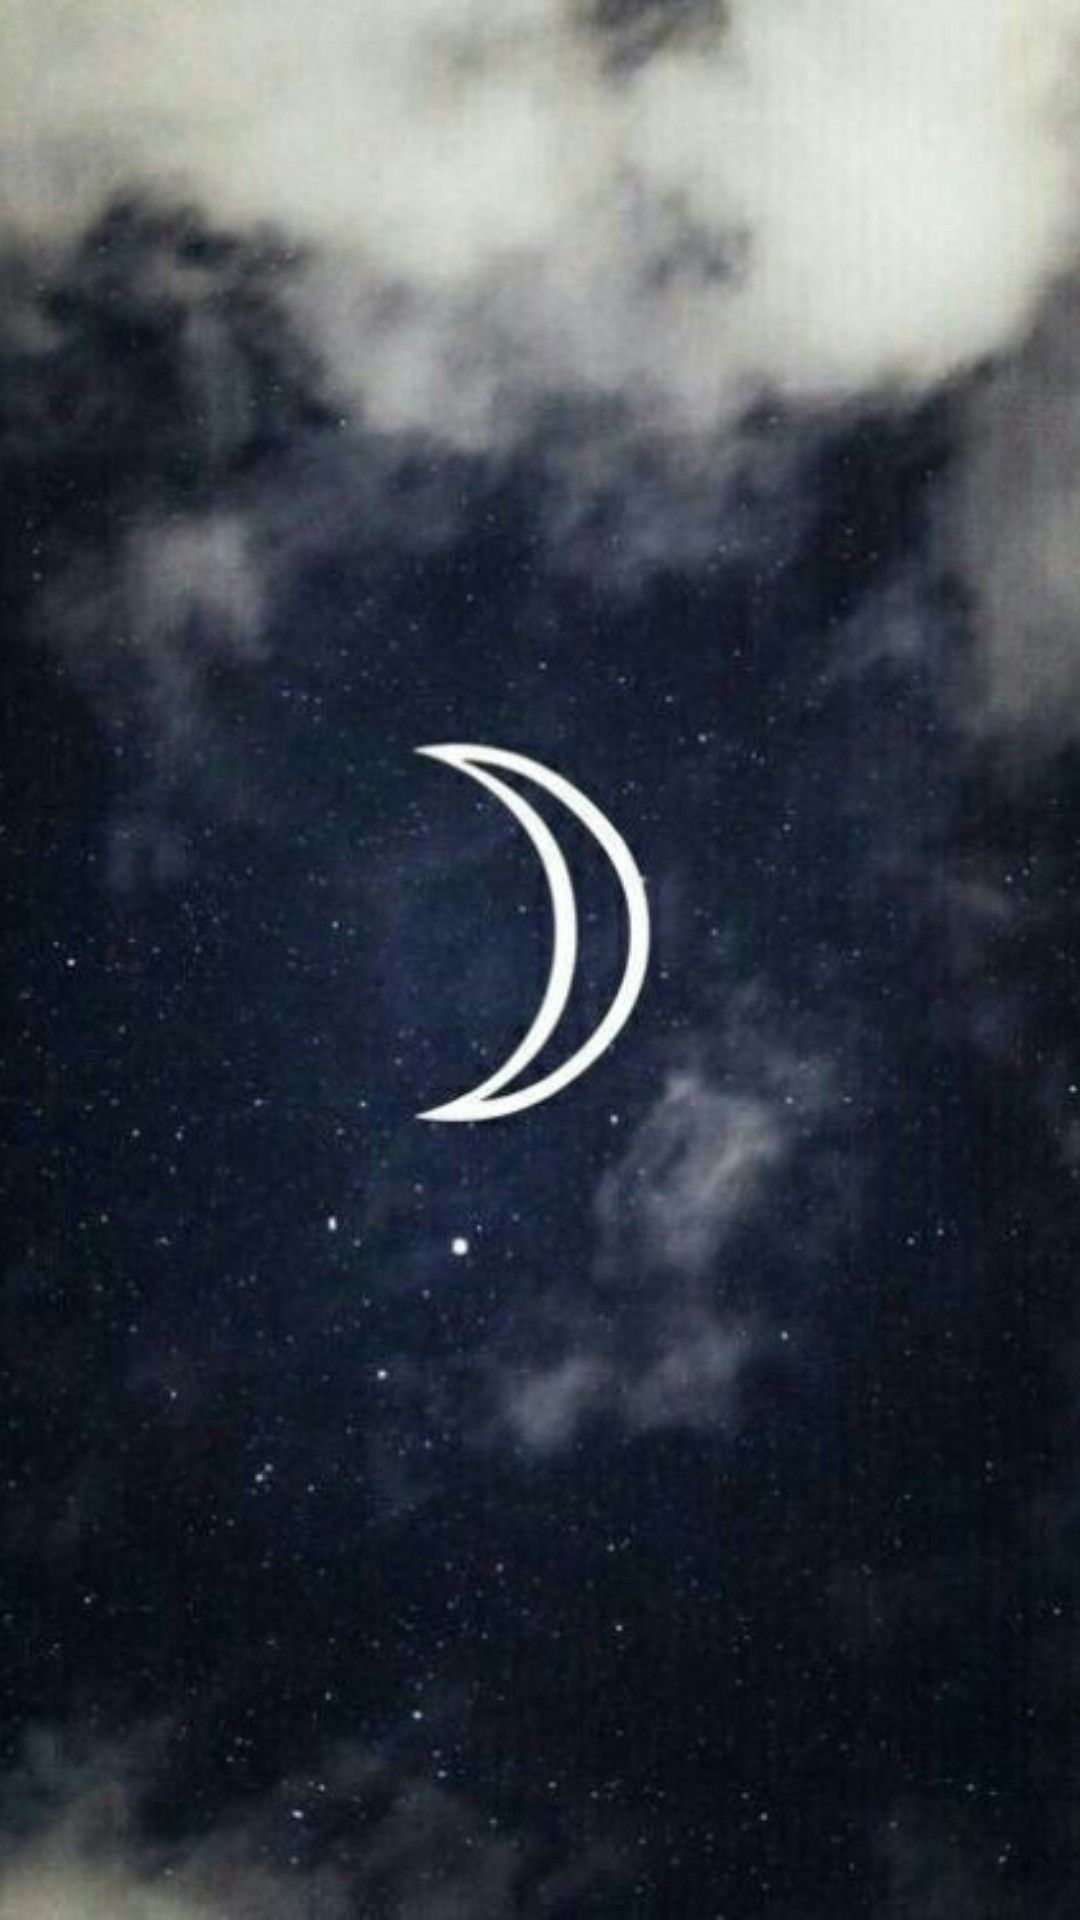 Elenamorelli Aim For The Moon If You Miss May Hit A Star